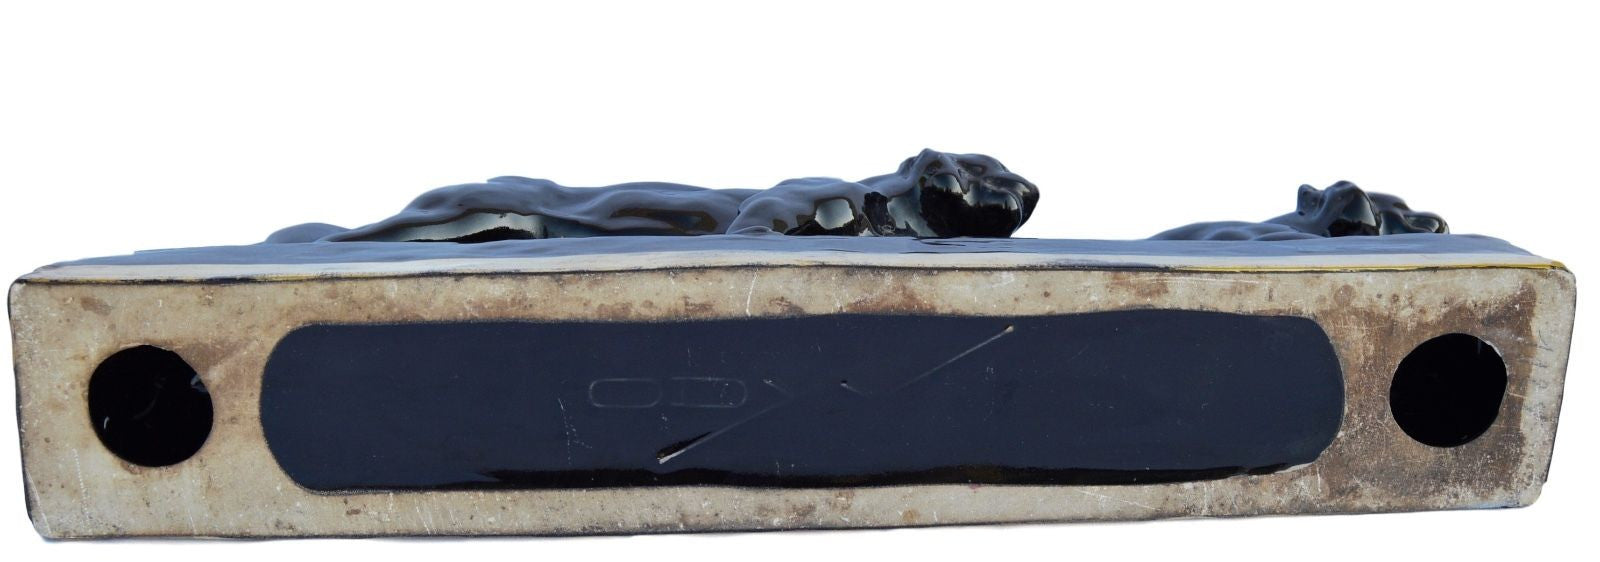 Art Deco ODYV 3 Black Tiger Statue - Charmantiques